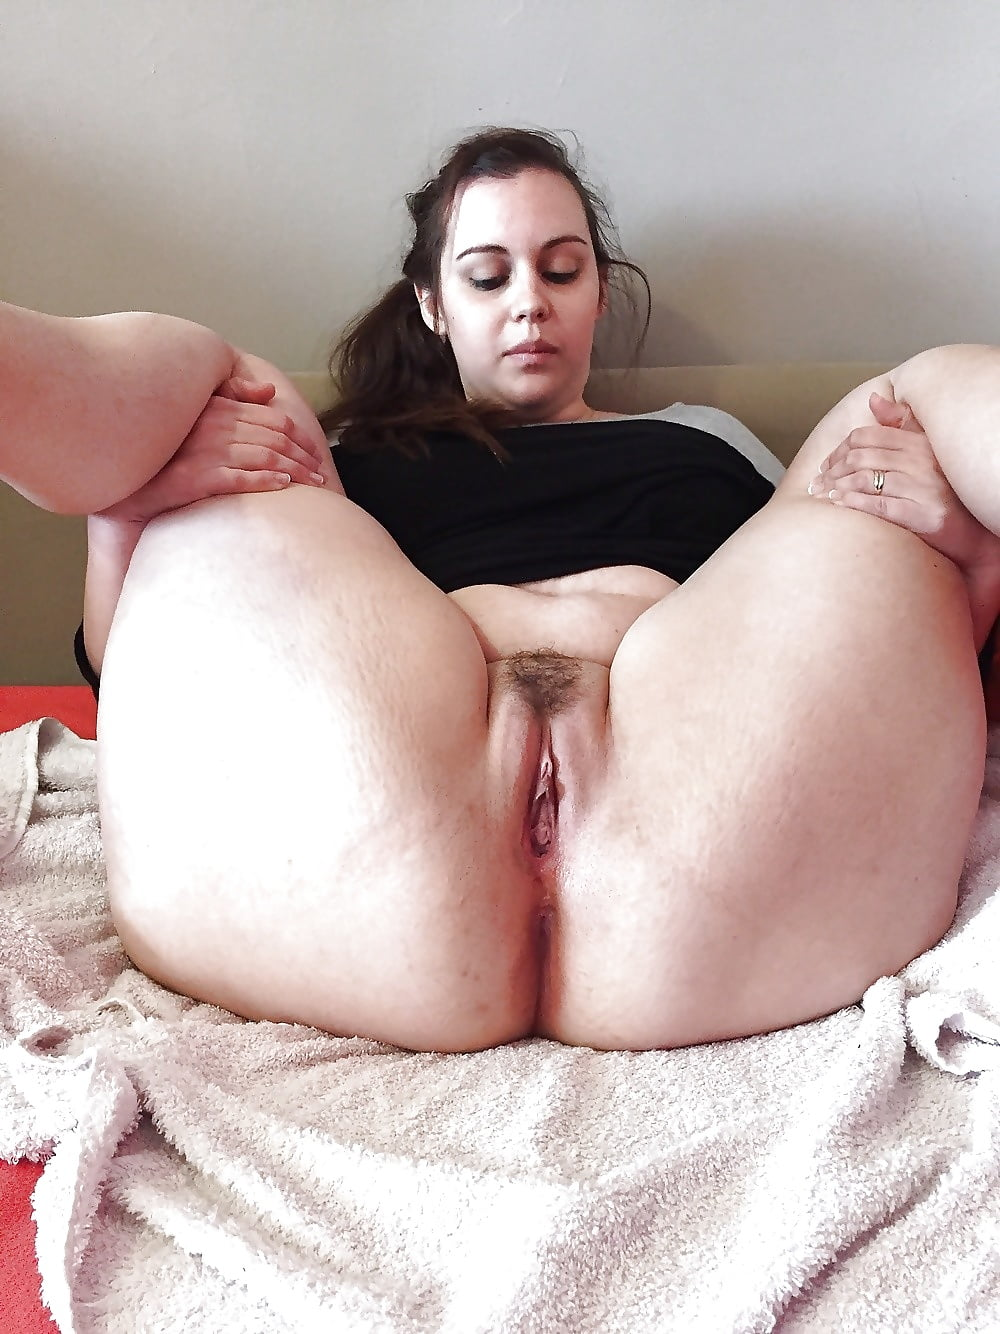 Fat pussy spreading download, video downloads girls